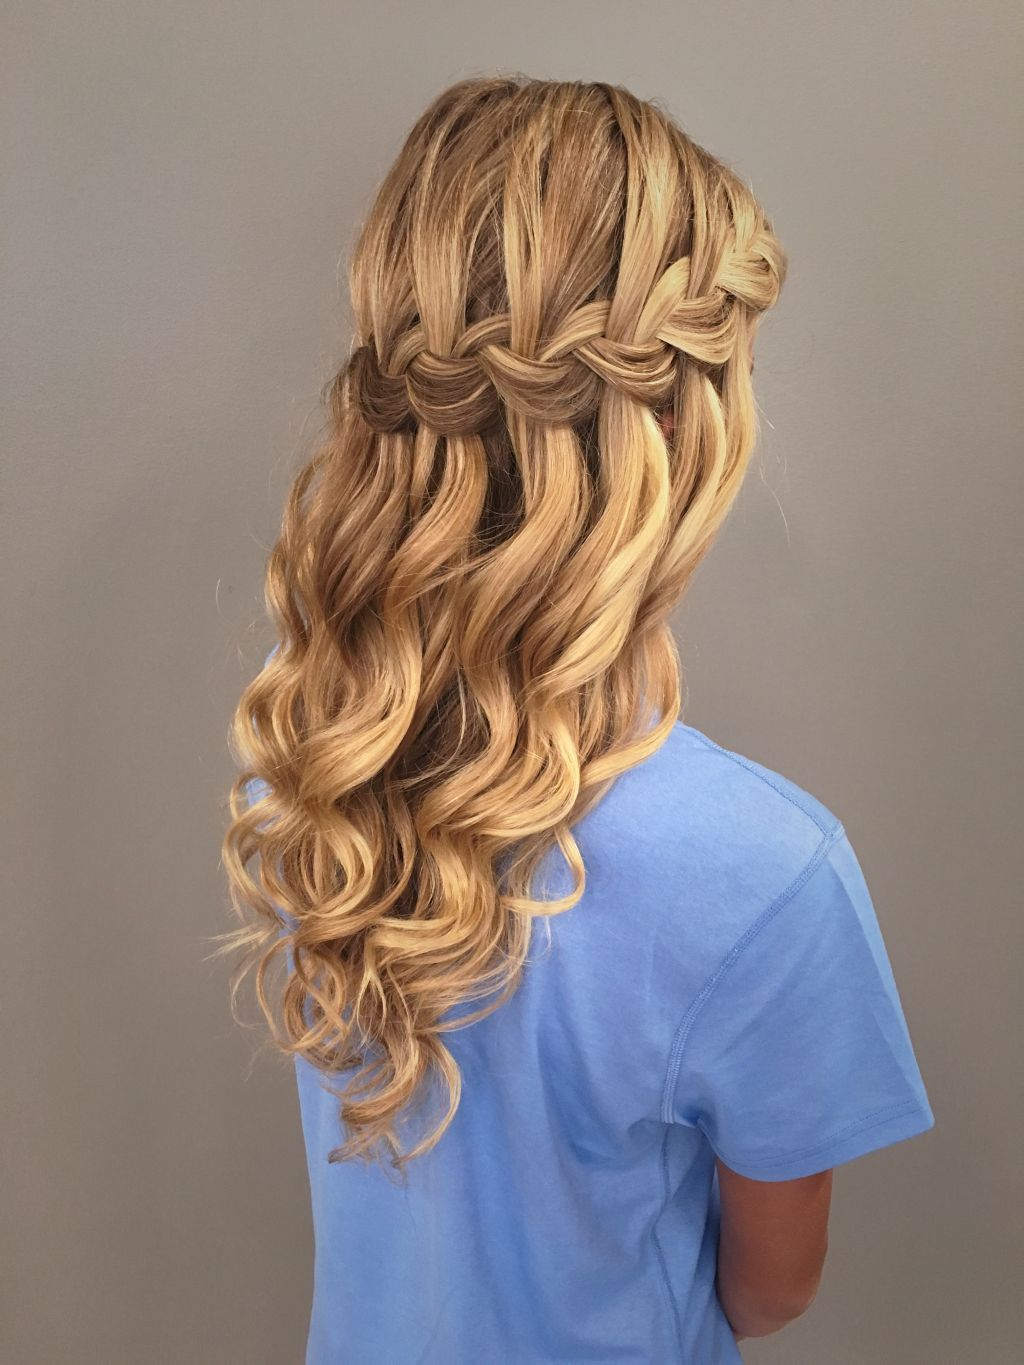 Cute Hairstyles For Homecoming